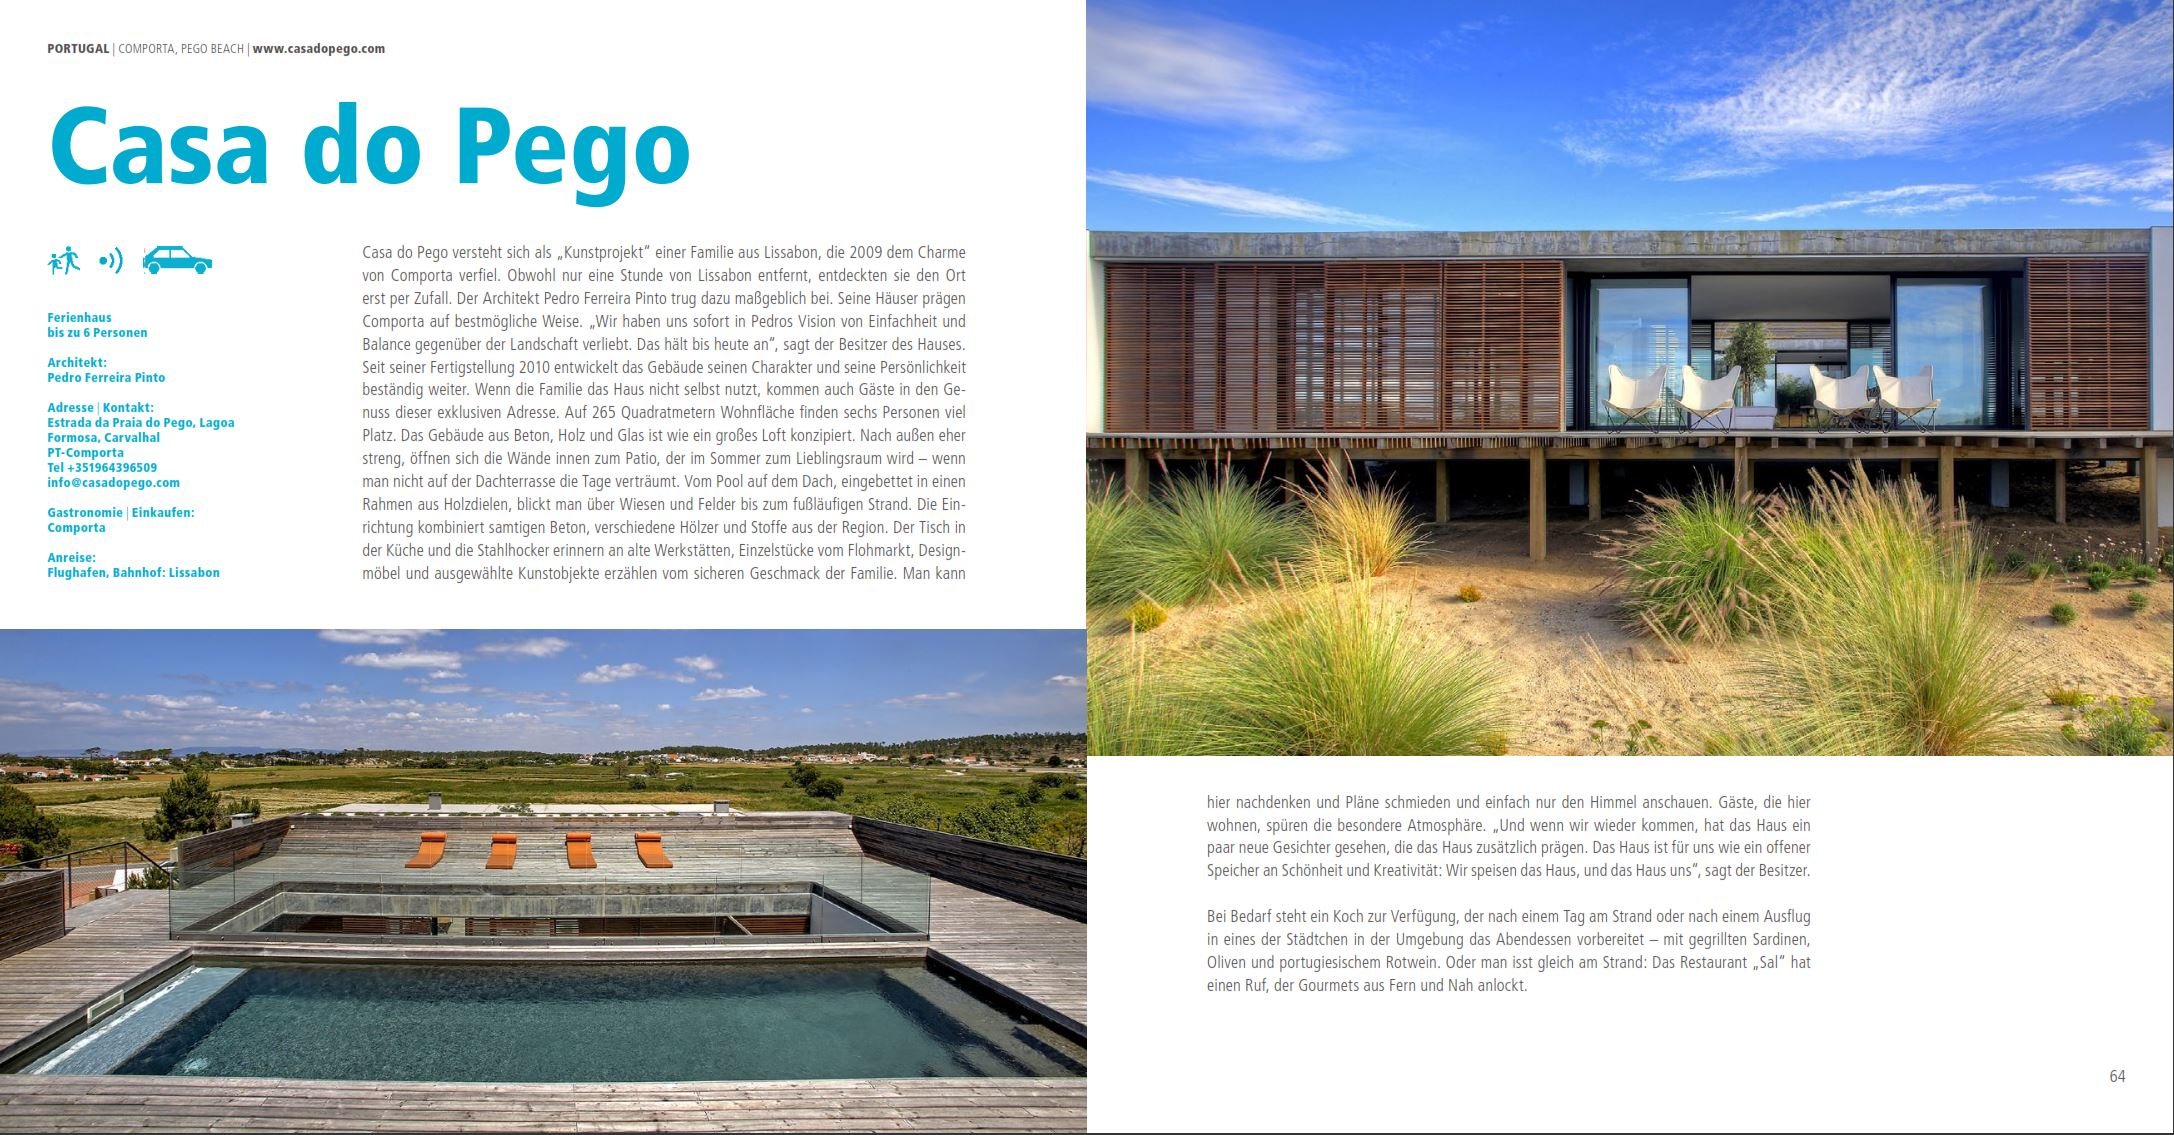 Casa do Pego in Holiday Architecture